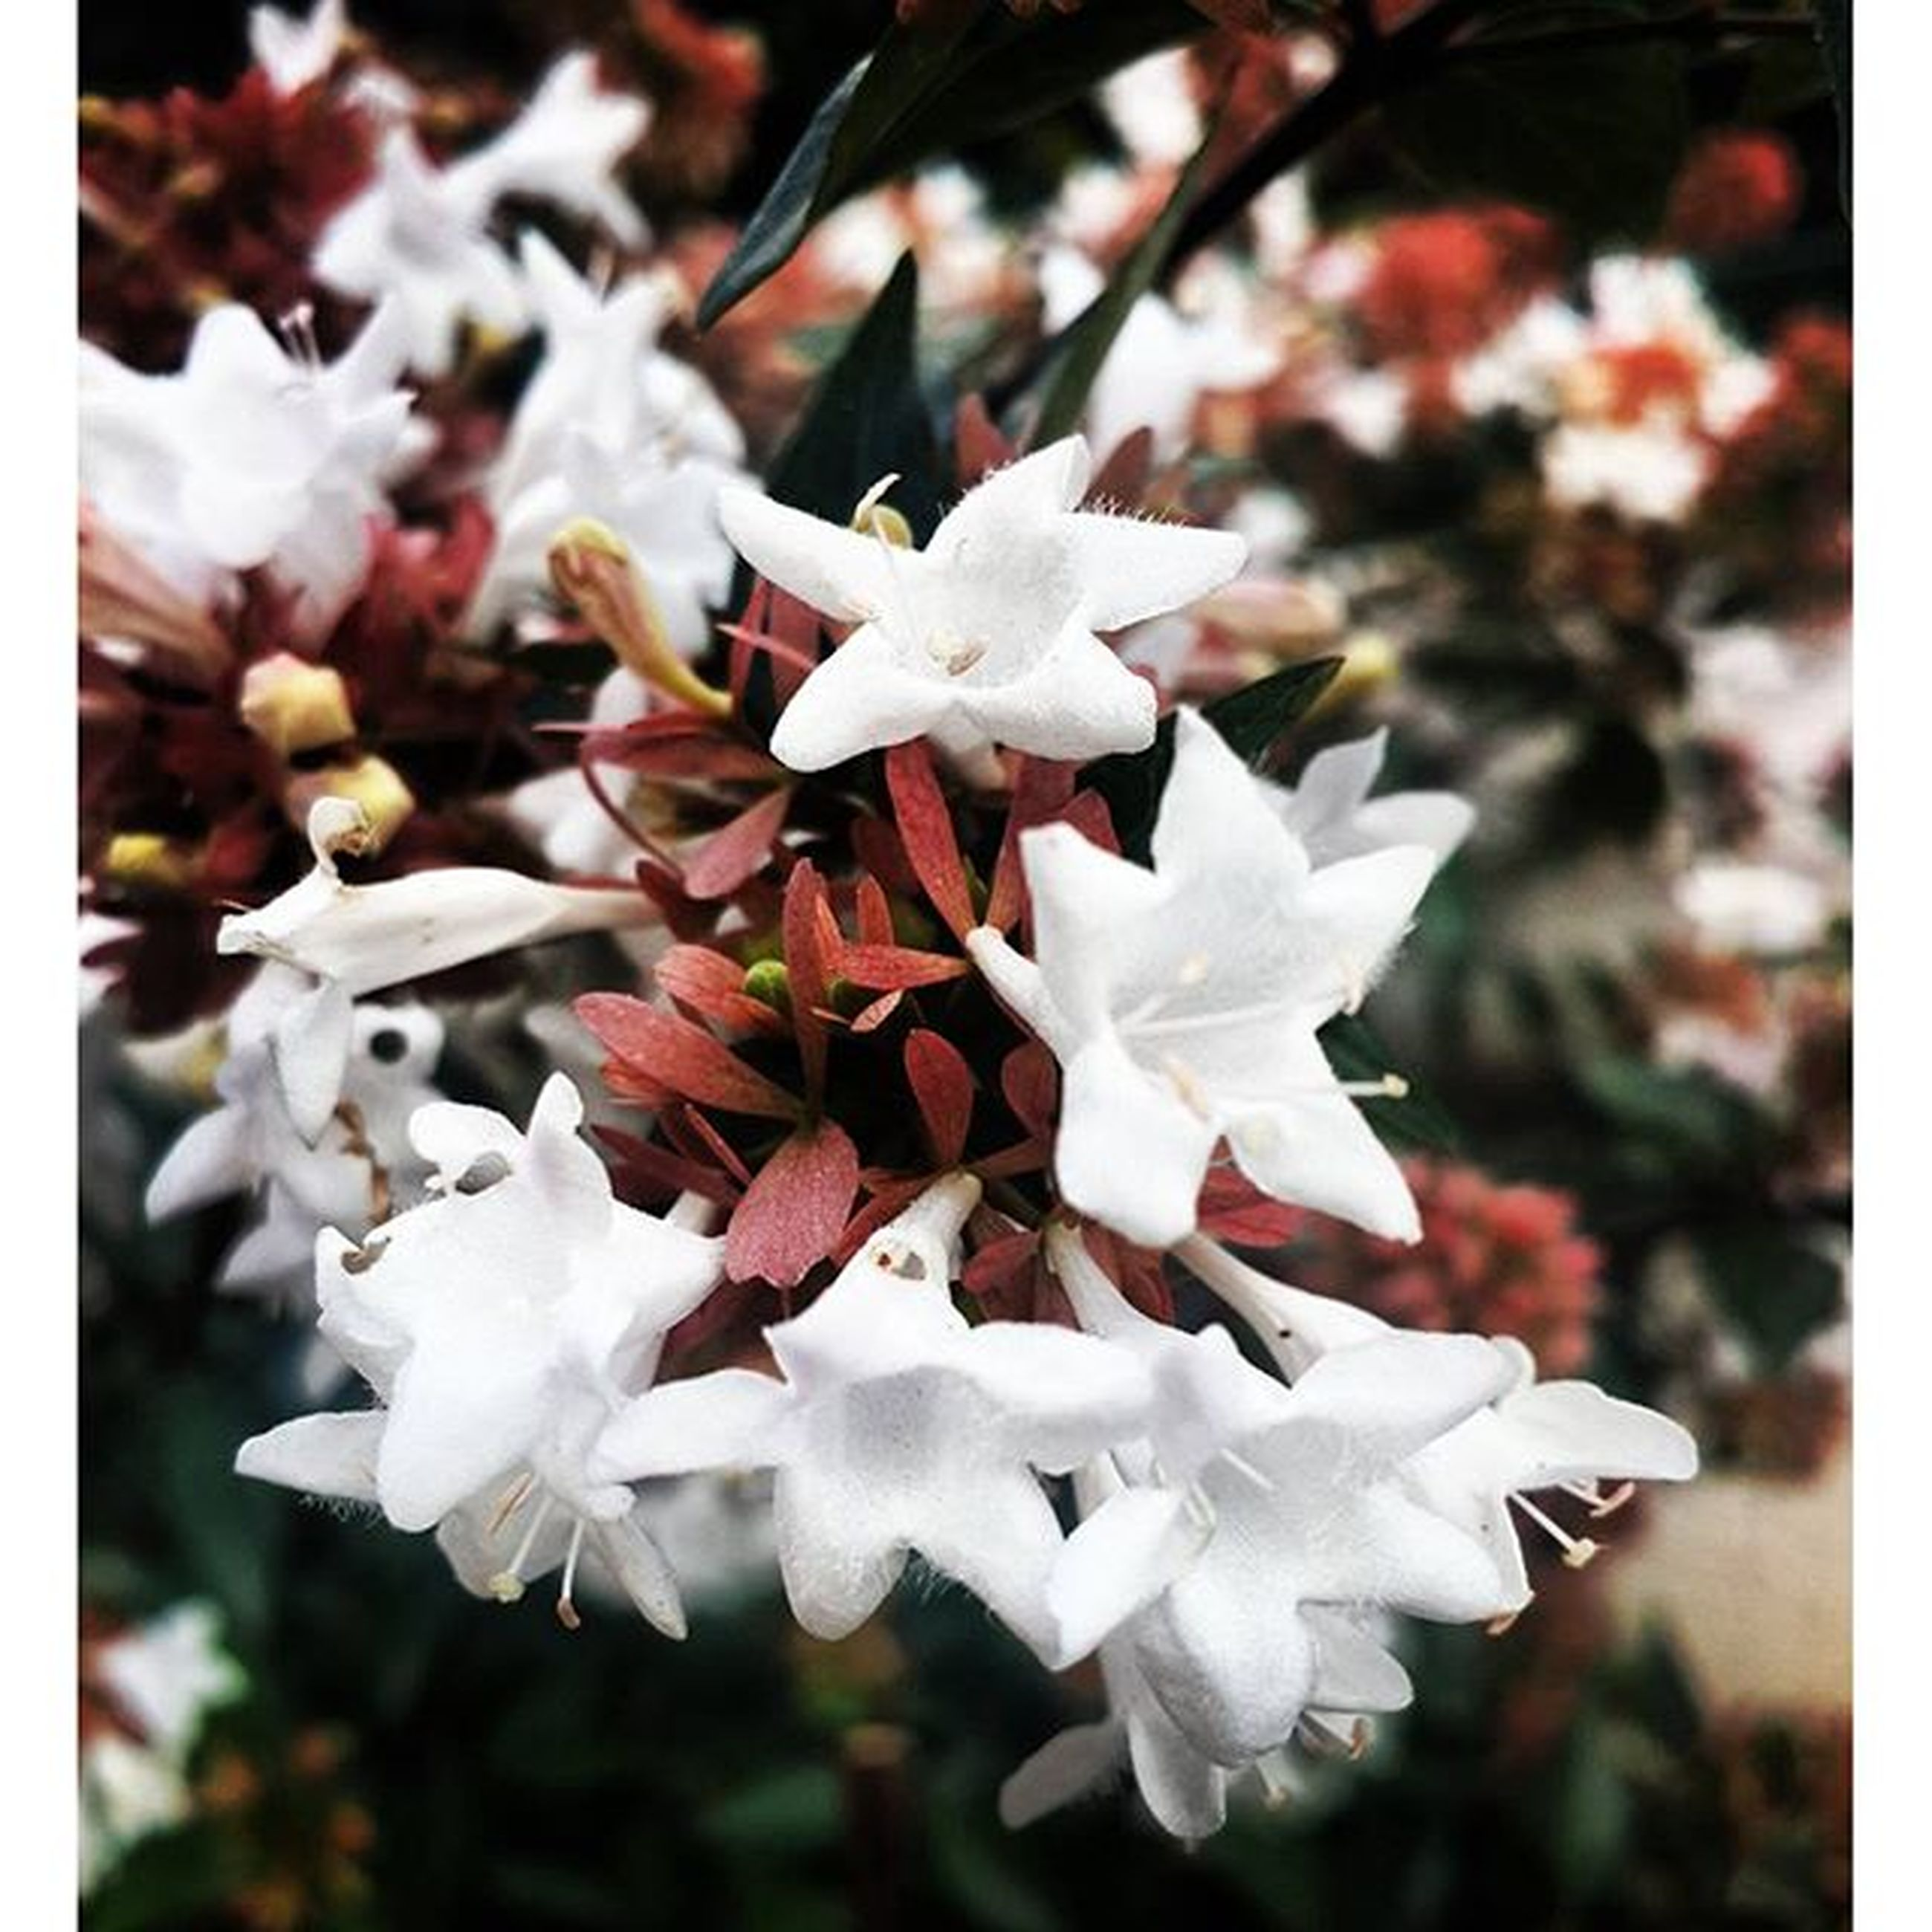 flower, fragility, petal, freshness, focus on foreground, beauty in nature, growth, close-up, white color, nature, flower head, season, transfer print, auto post production filter, in bloom, blooming, blossom, park - man made space, cherry blossom, day